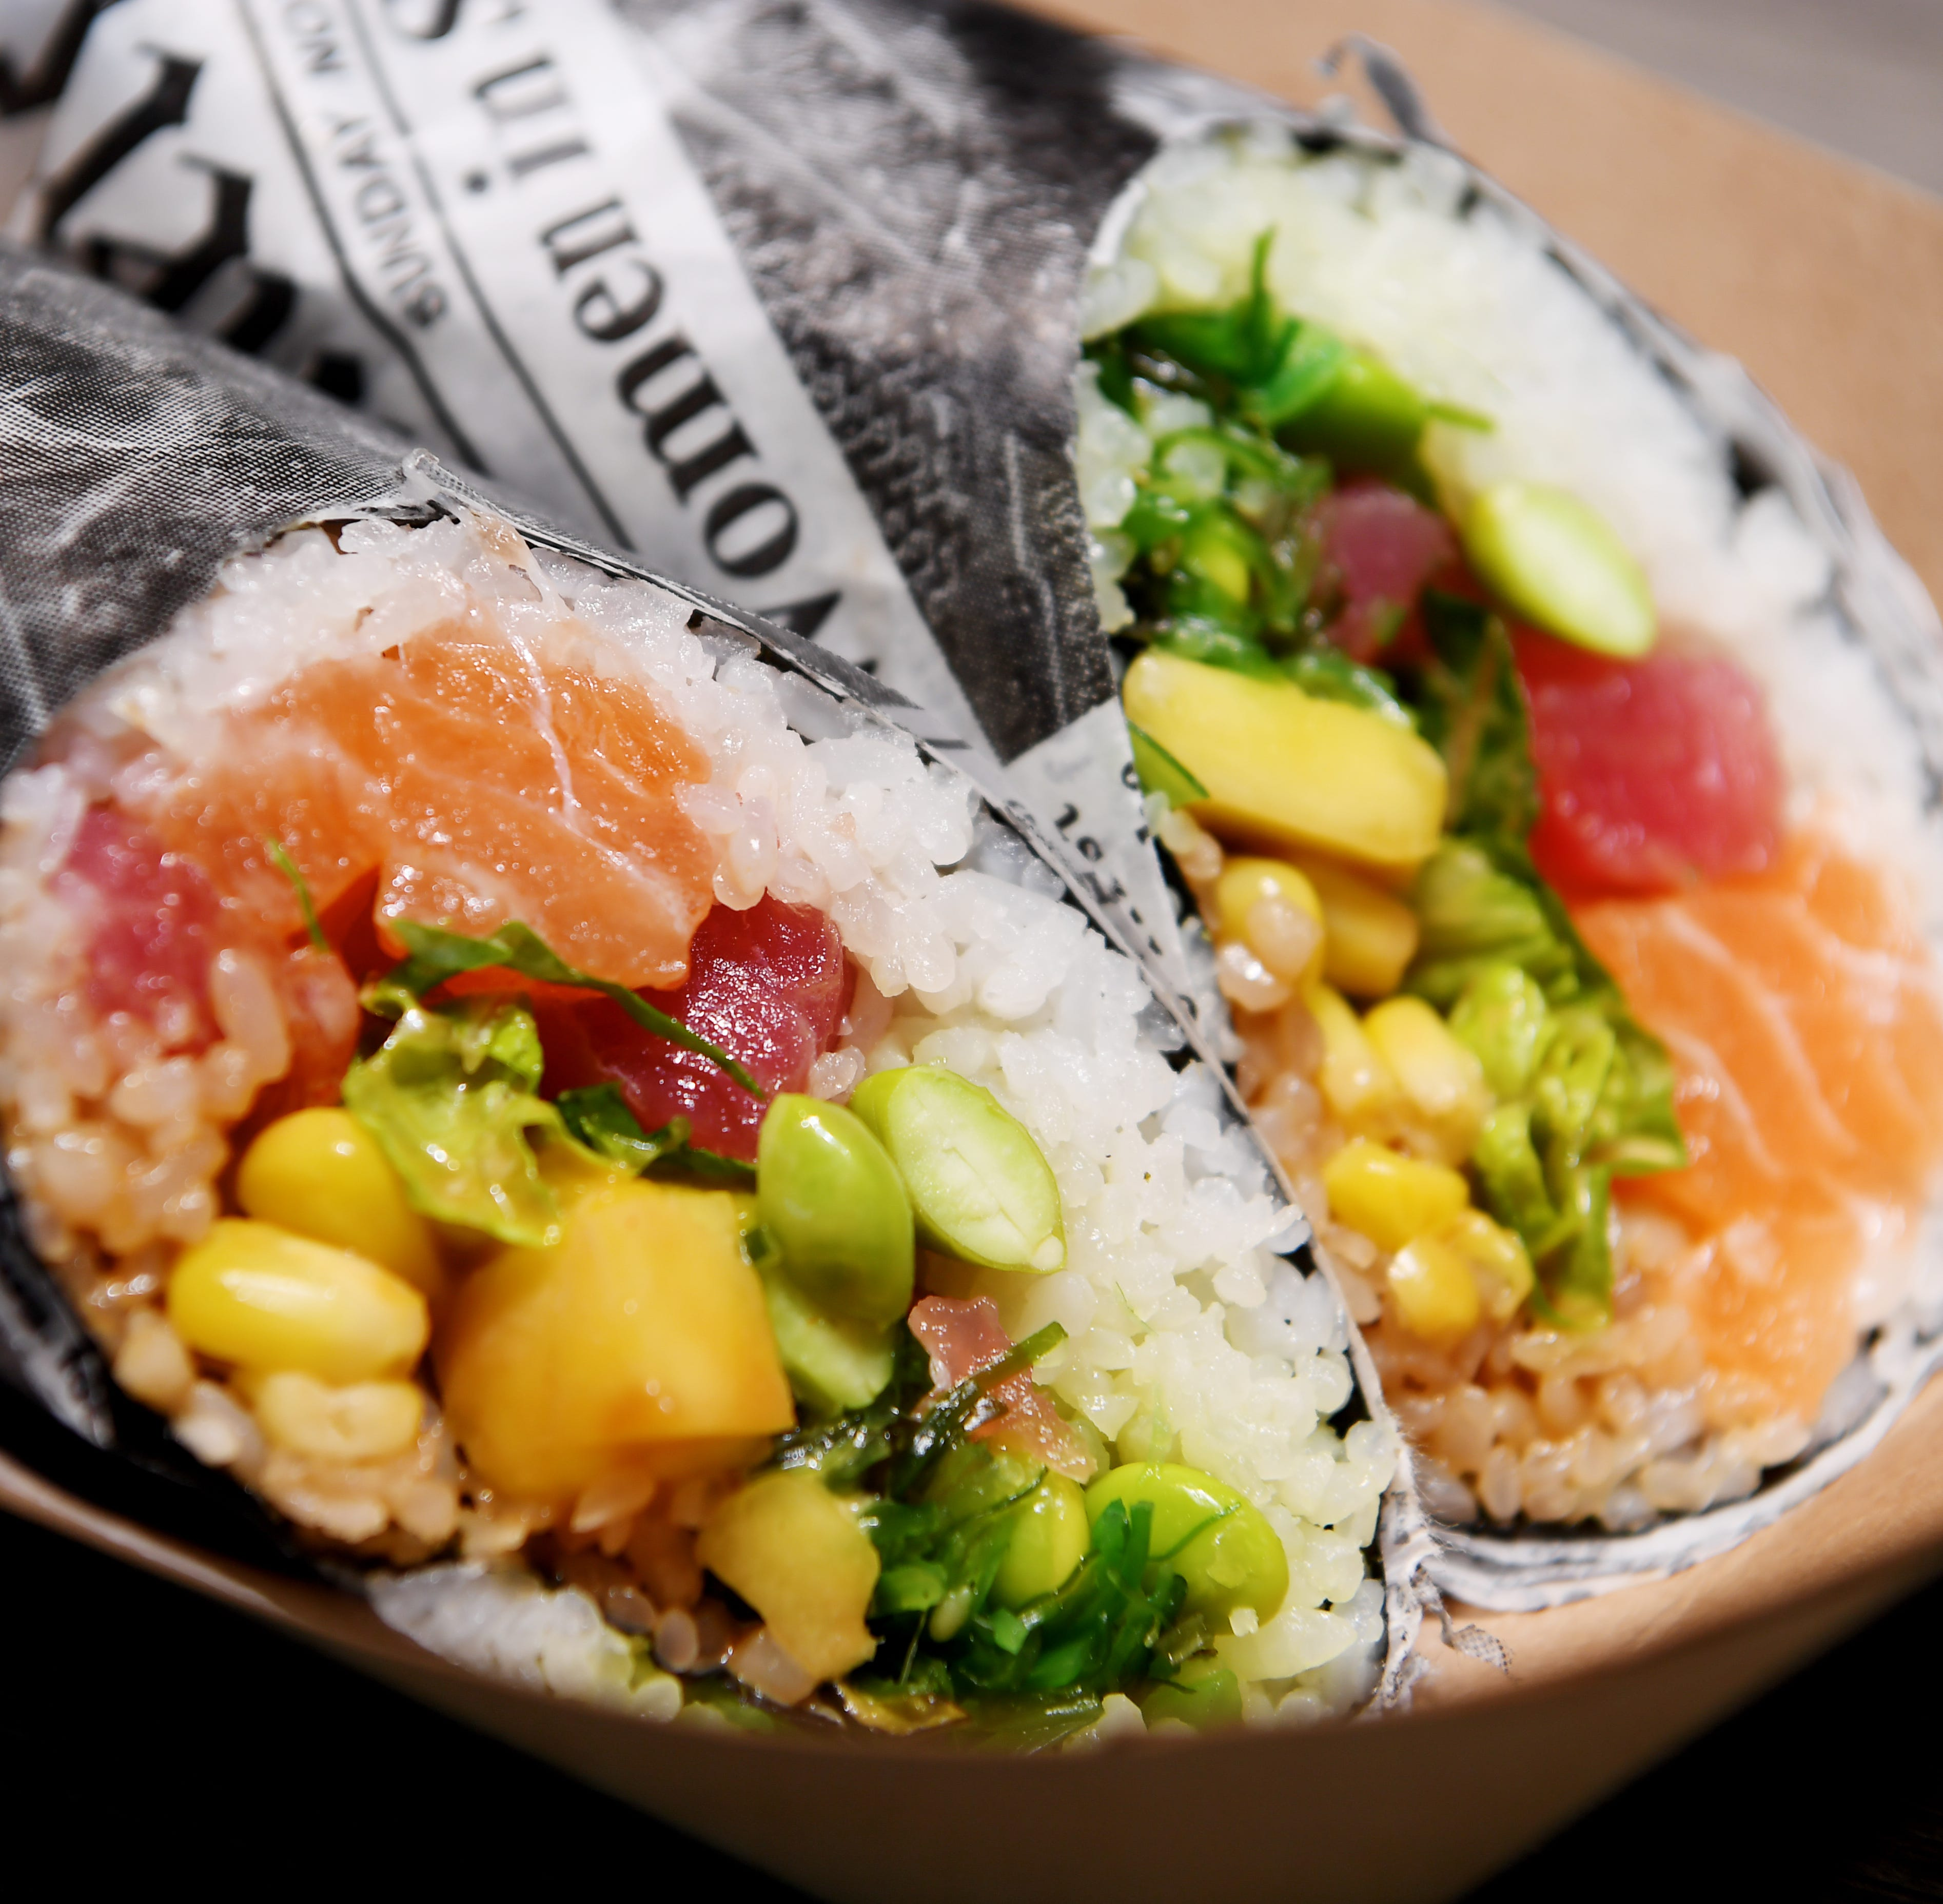 Dining review: Yum Sushi and Poke brings its take on Hawaiian food to Arden